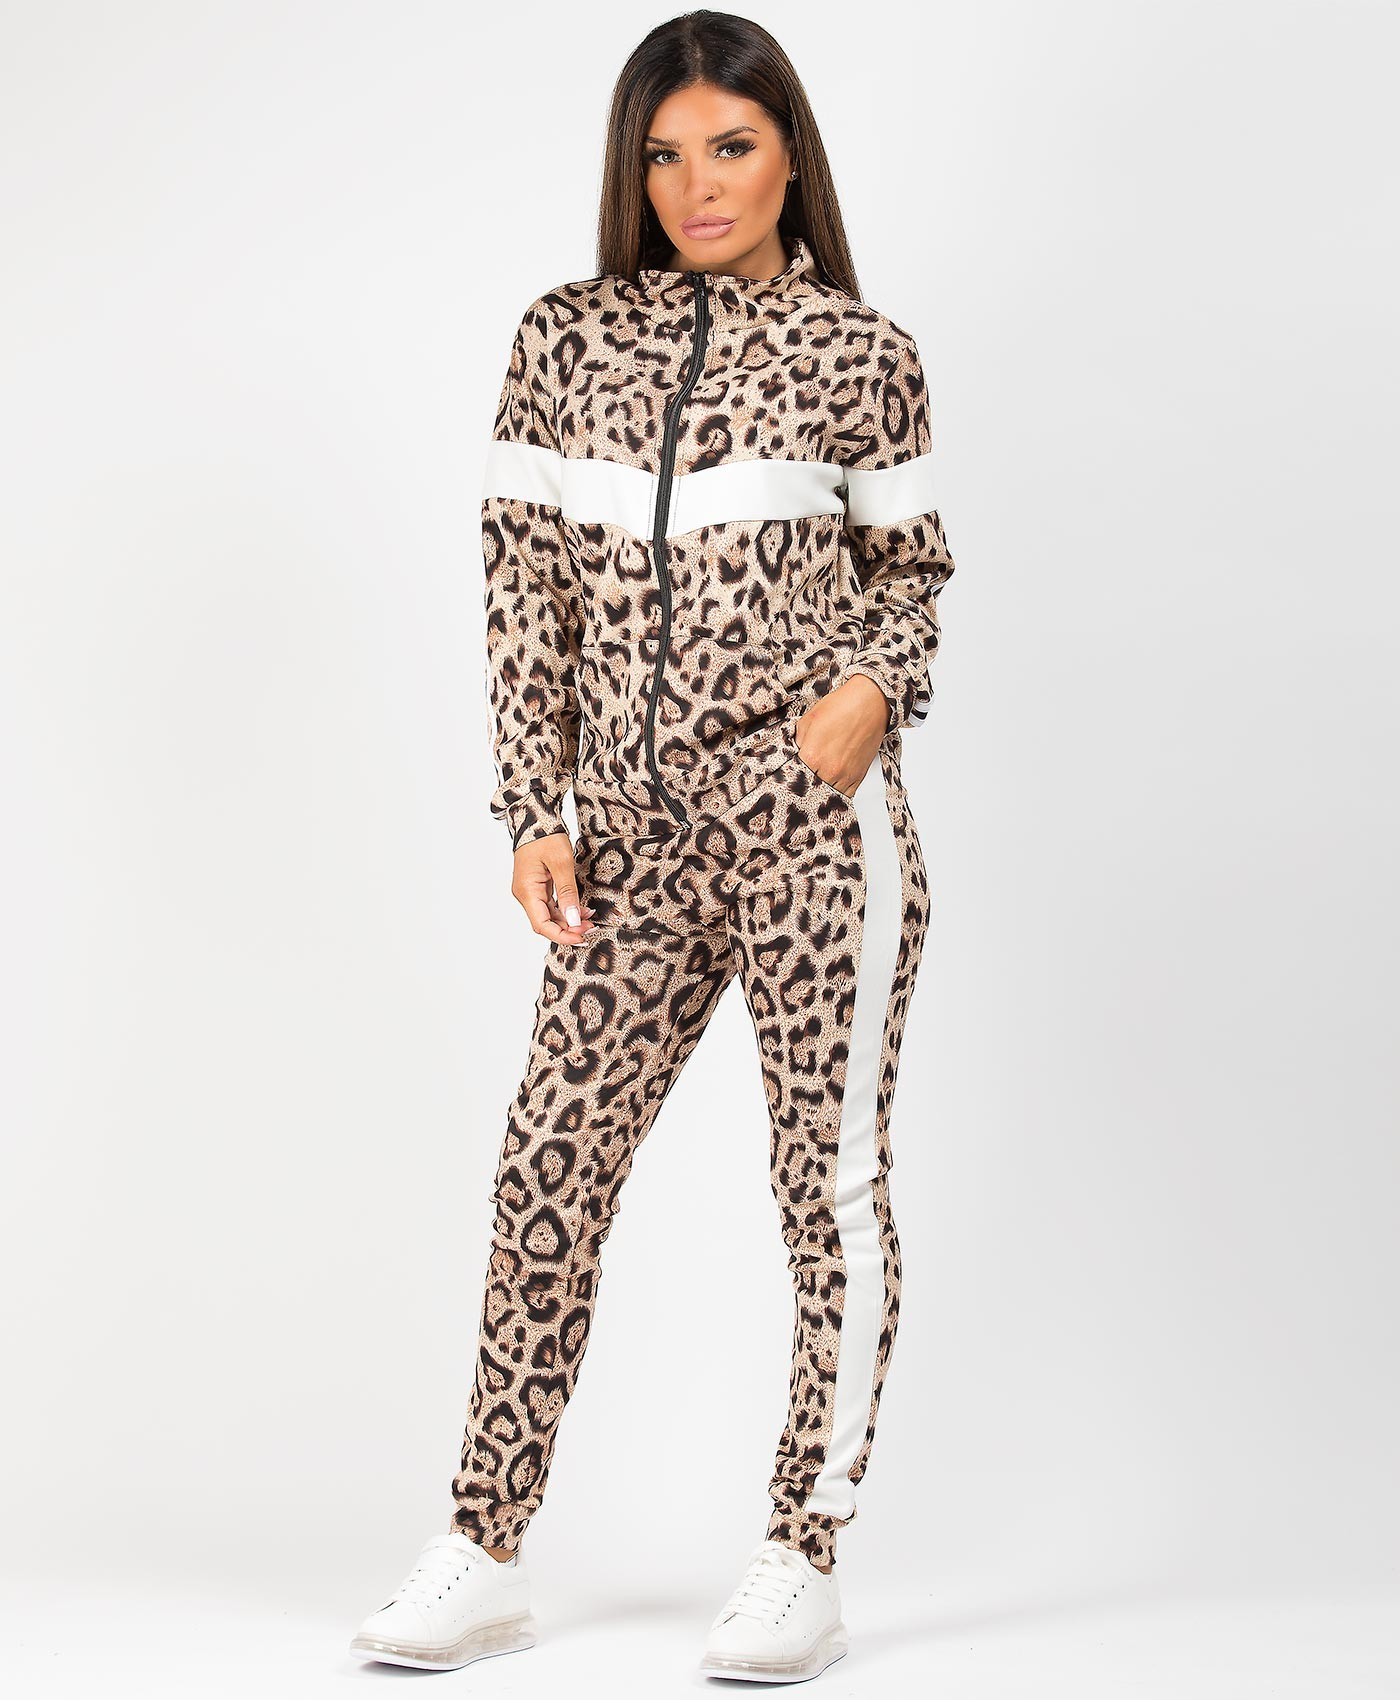 White-Leopard-Print-Panel-Side-Stripe-Tracksuit-Loungewear-Set-1